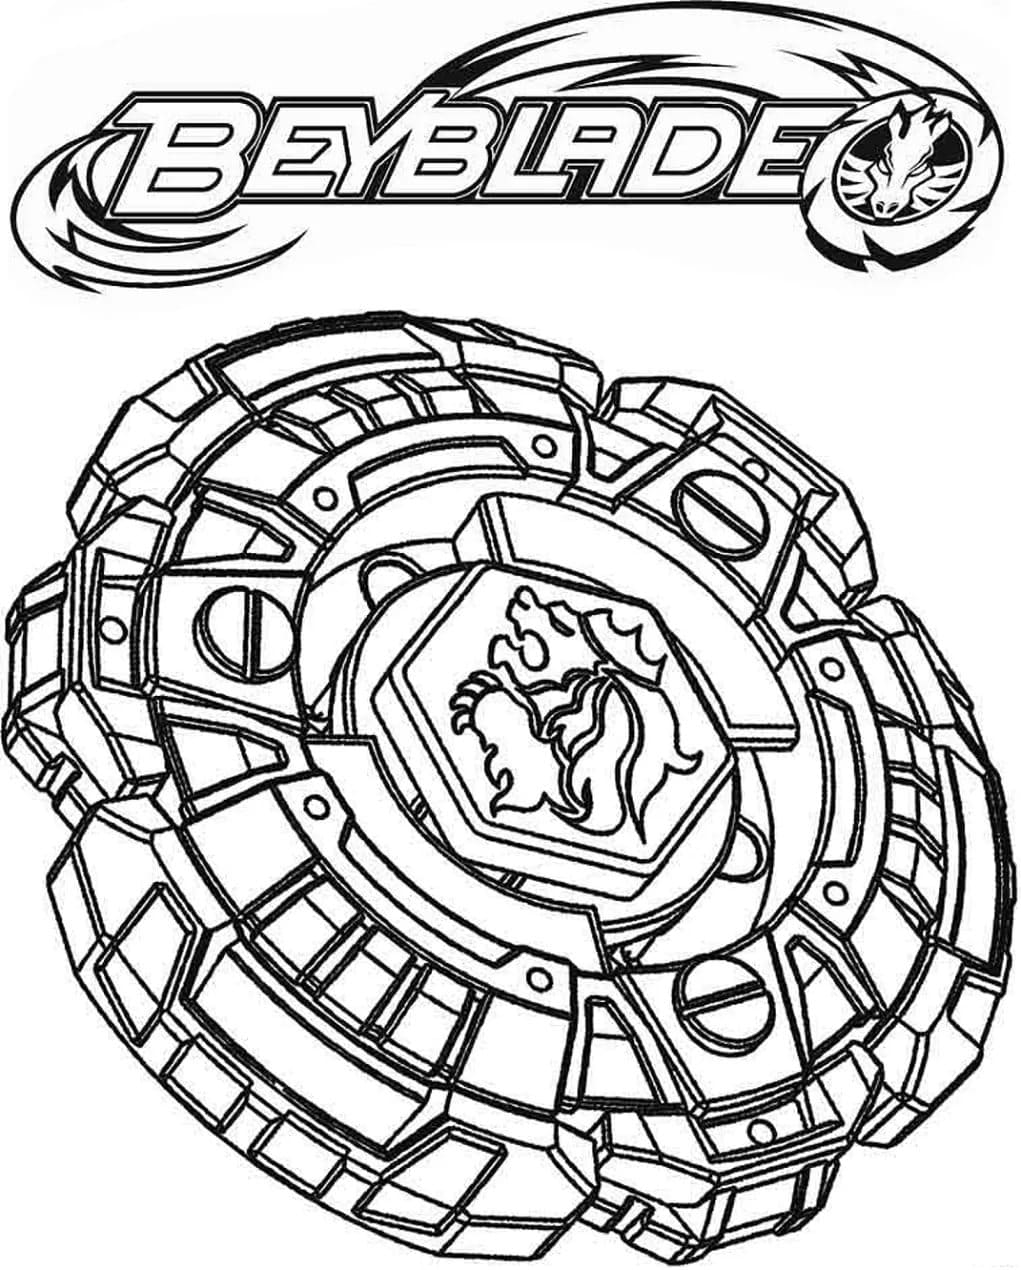 beyblade characters coloring pages beyblade coloring pages getcoloringpagescom beyblade coloring pages characters